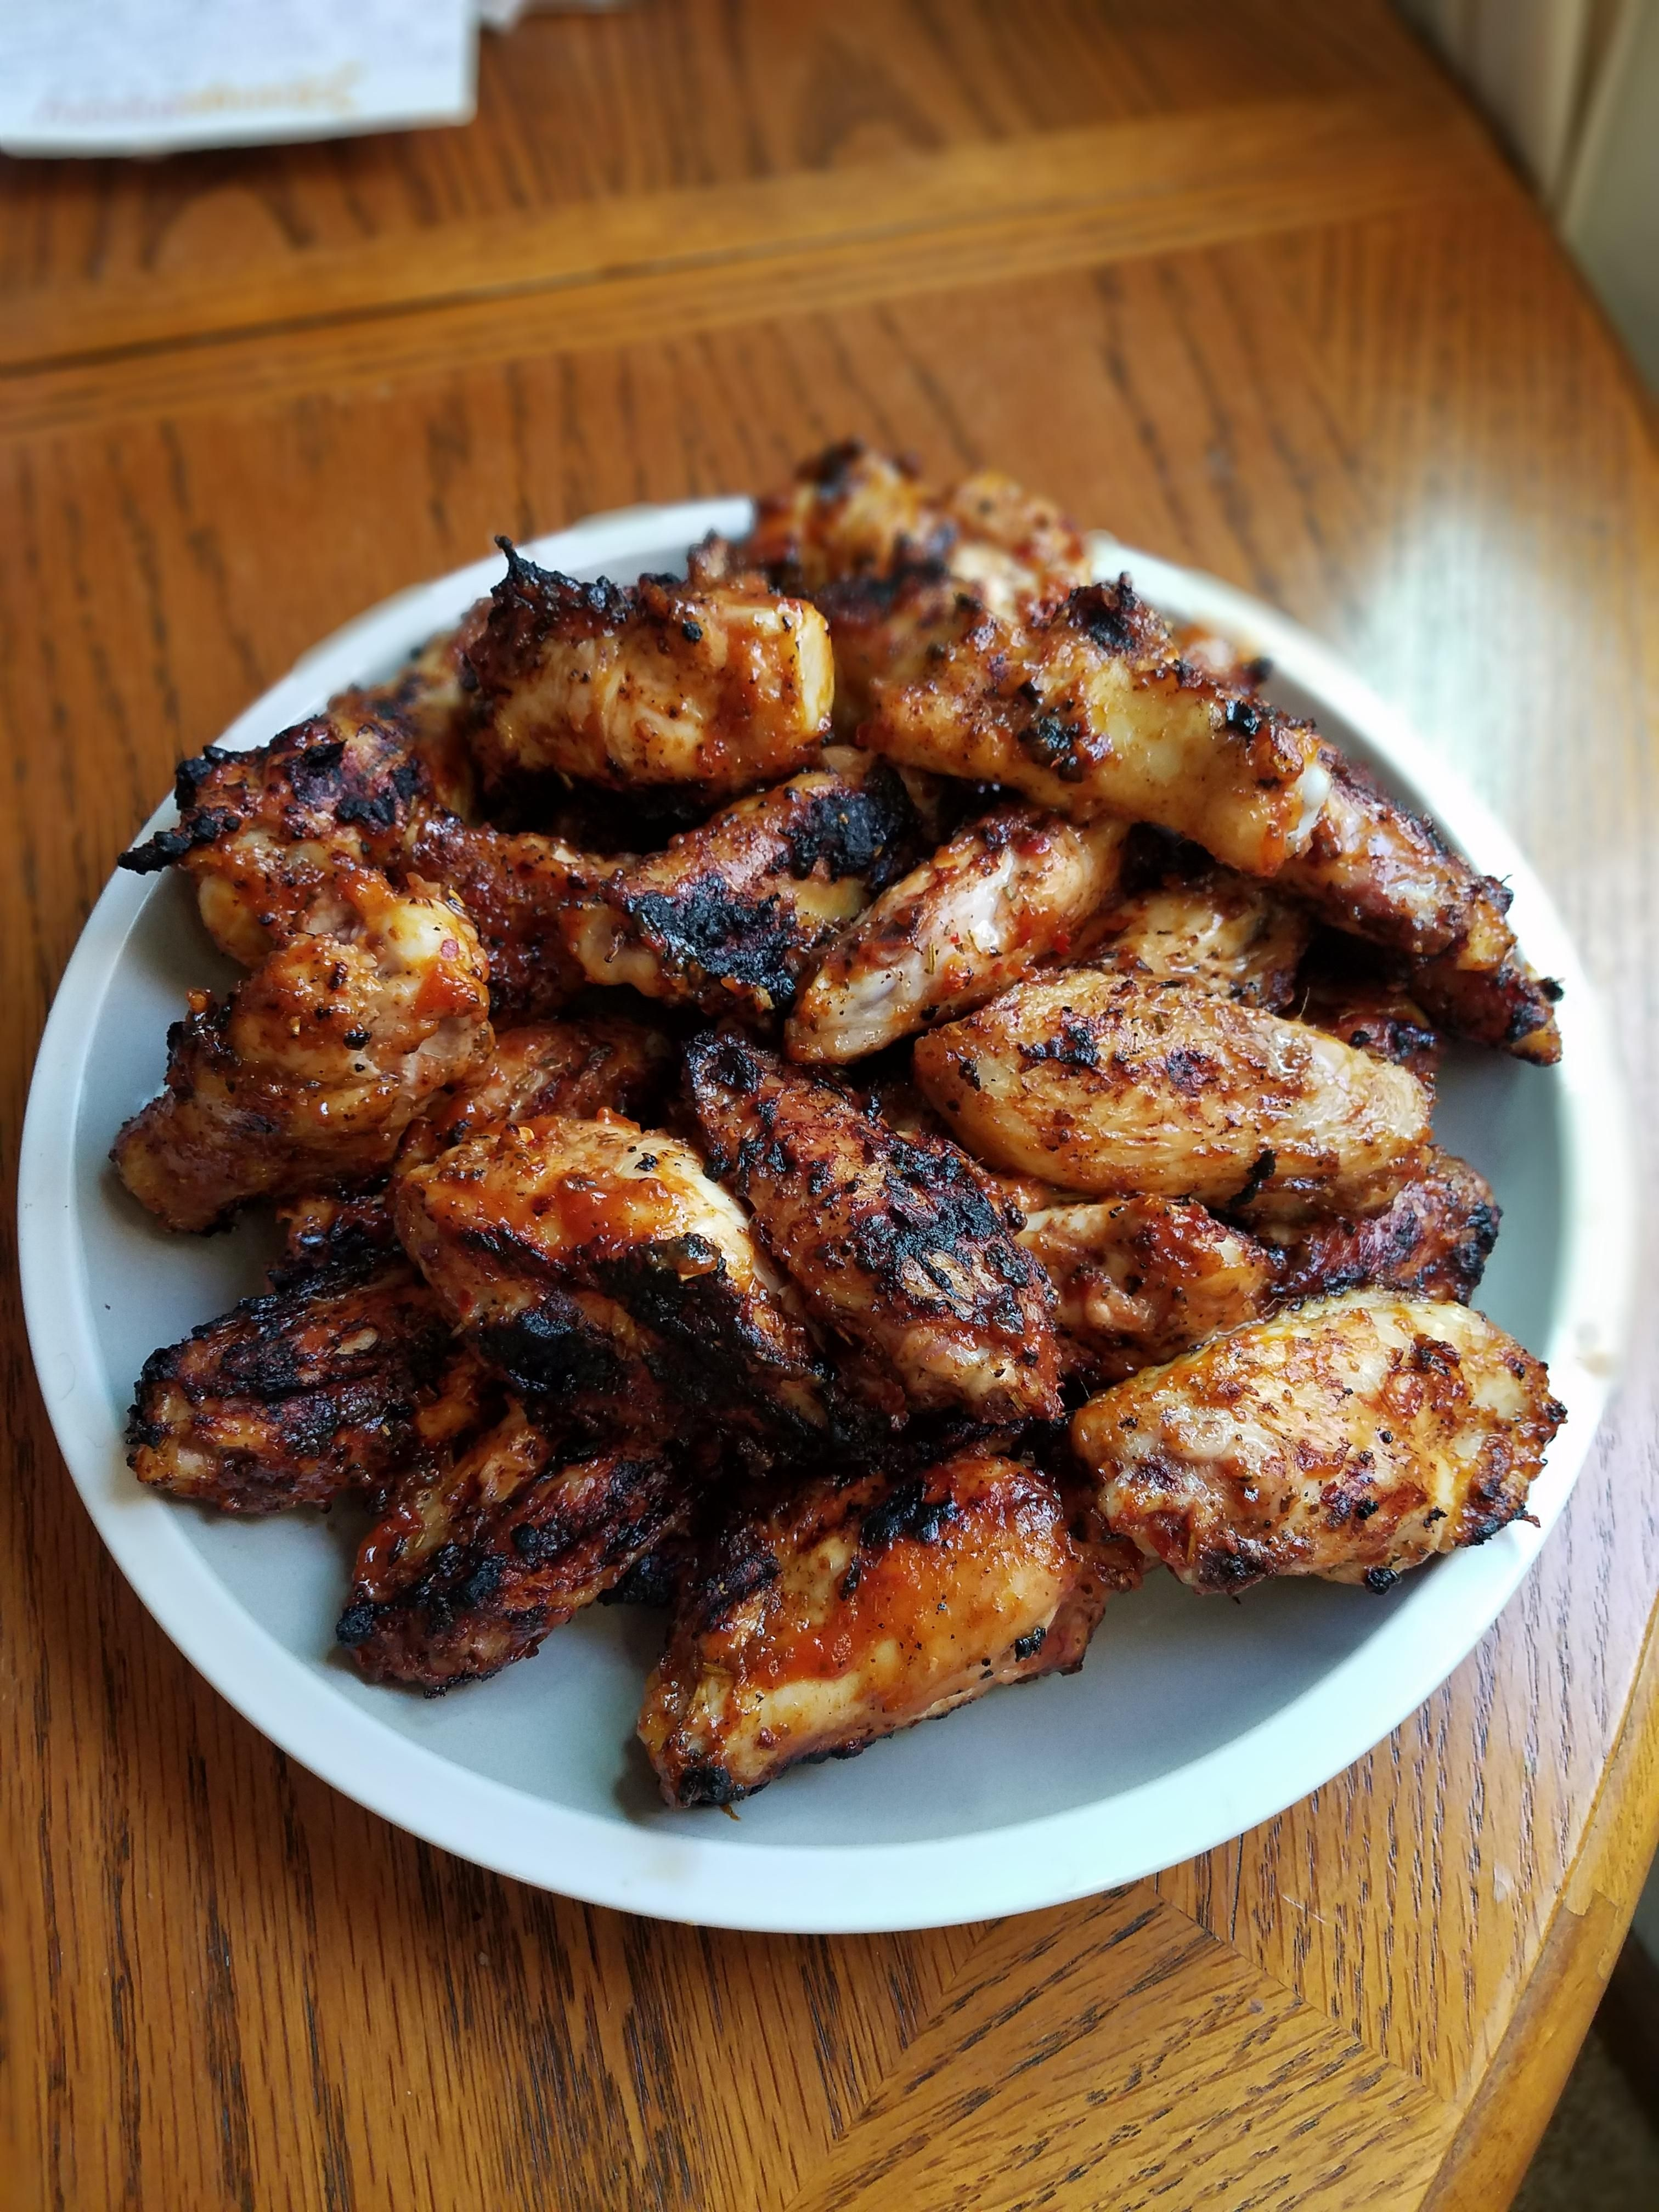 Homemade Grilled Chicken Wings With A Mustard Based Bbq Sauce